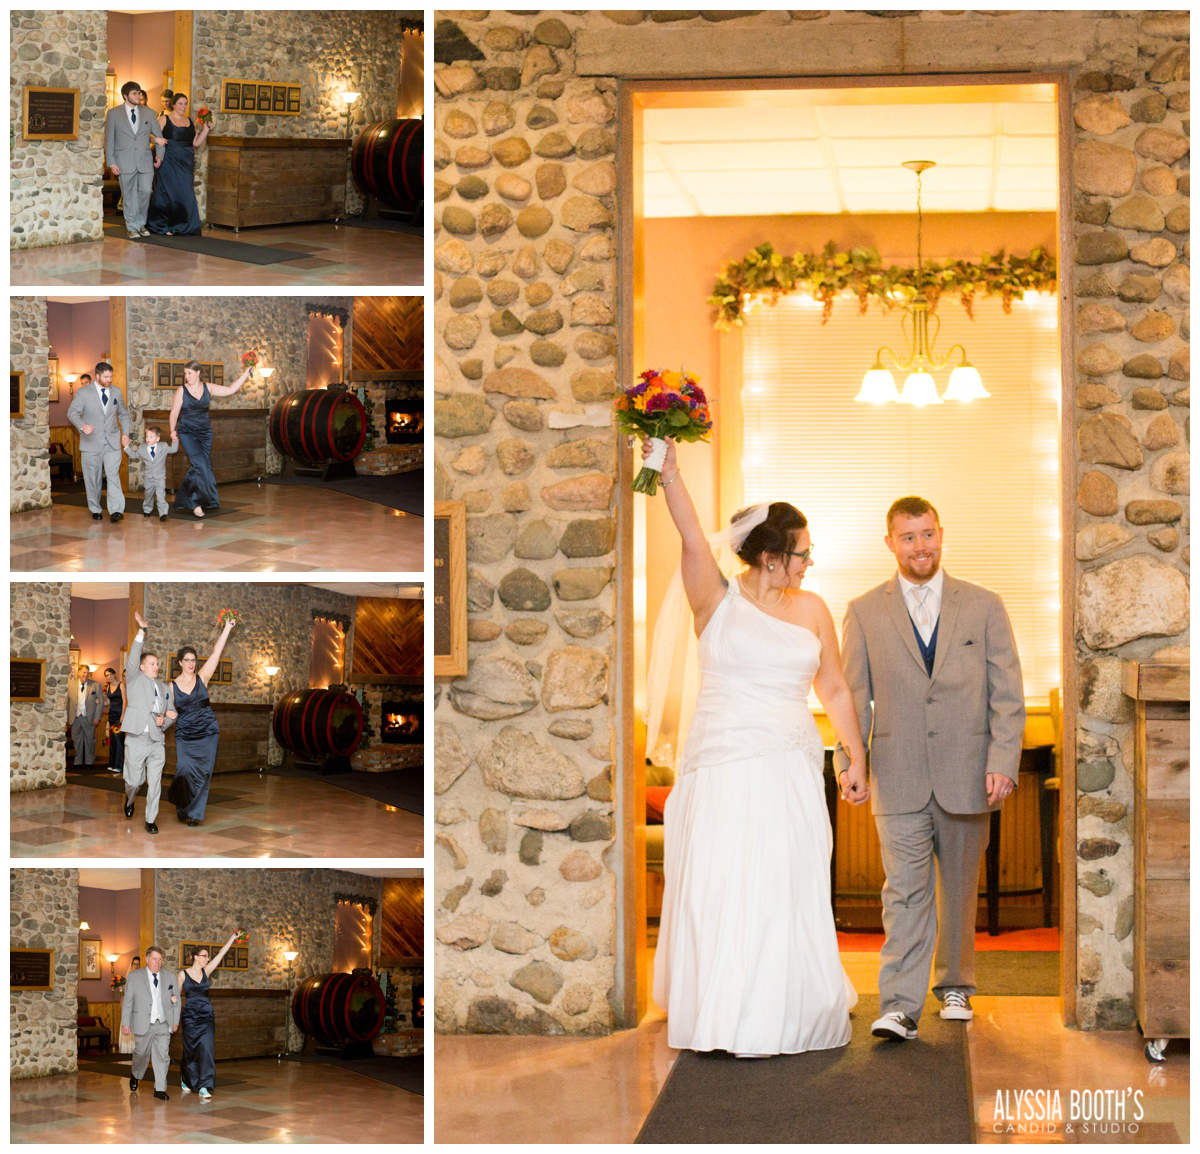 Enter The Reception | Marisa & Garrett 10.23.15 | Wedding at the Lawton Community Center | Kalamazoo Mi | Alyssia Booth's Candid & Studio